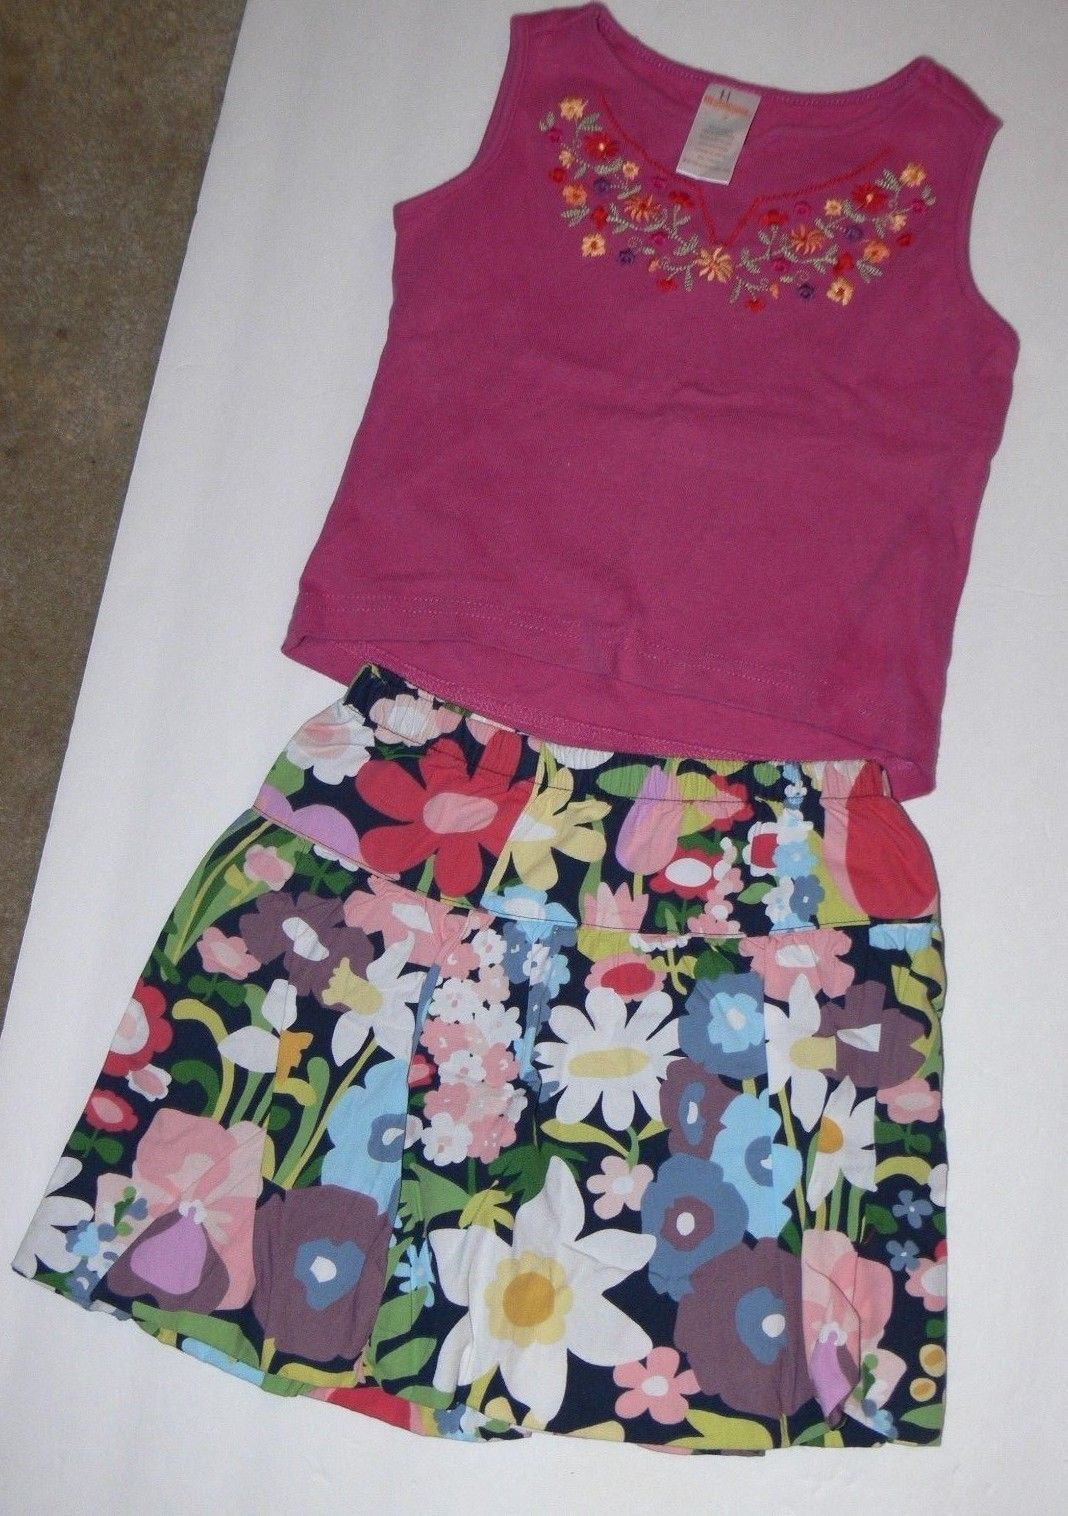 Shop For Cheap Nwt Gymboree Mix N Match Pink Heart Corduroy Skirt 2t Skirts